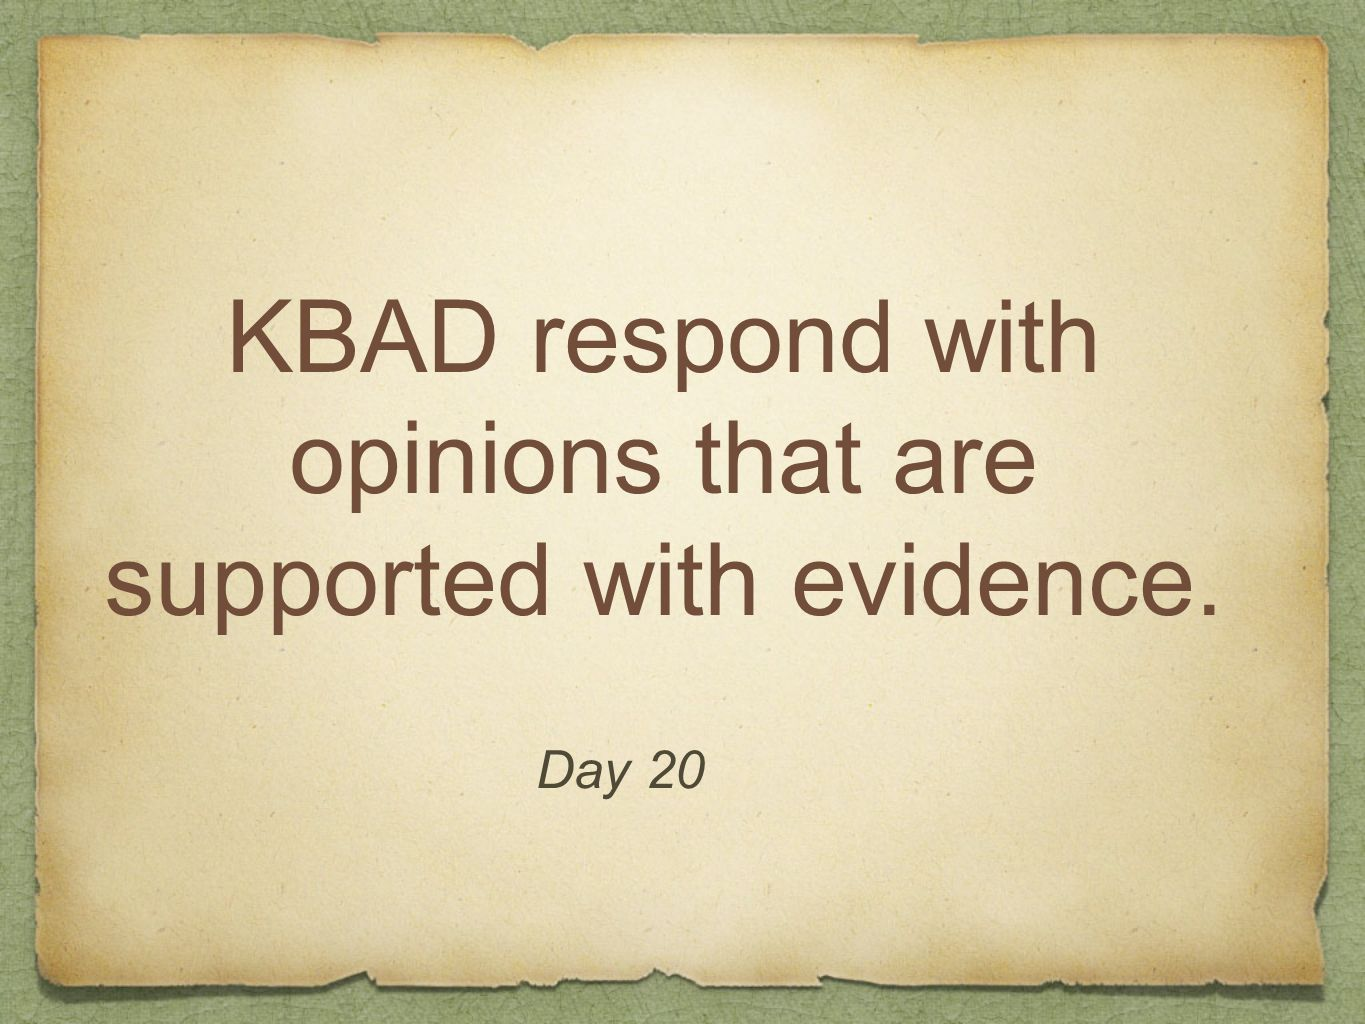 KBAD respond with opinions that are supported with evidence.